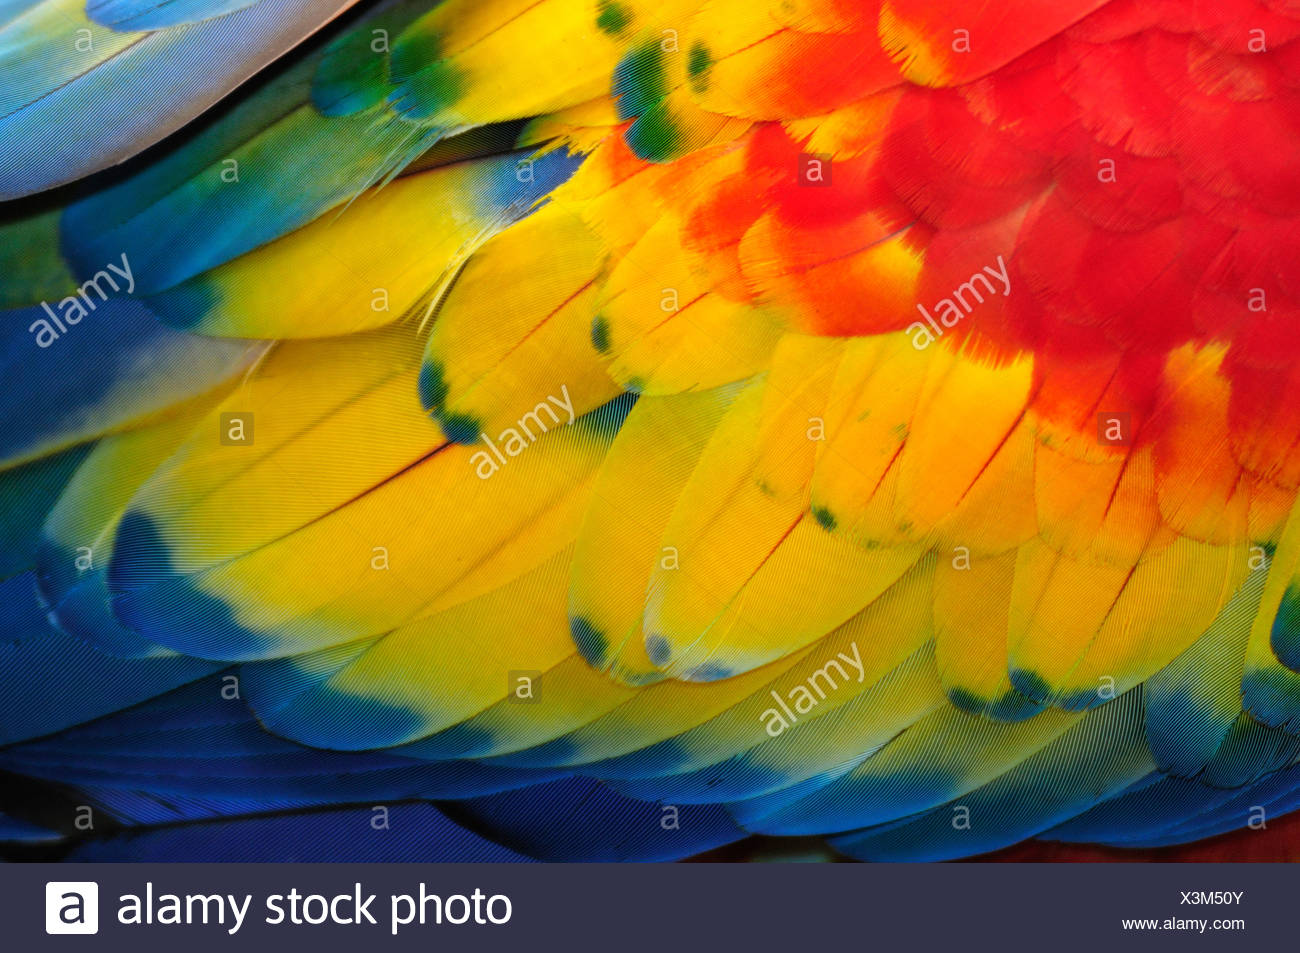 Macaw, parrots, Central America, Honduras, feathers, colours, concepts, Stock Photo